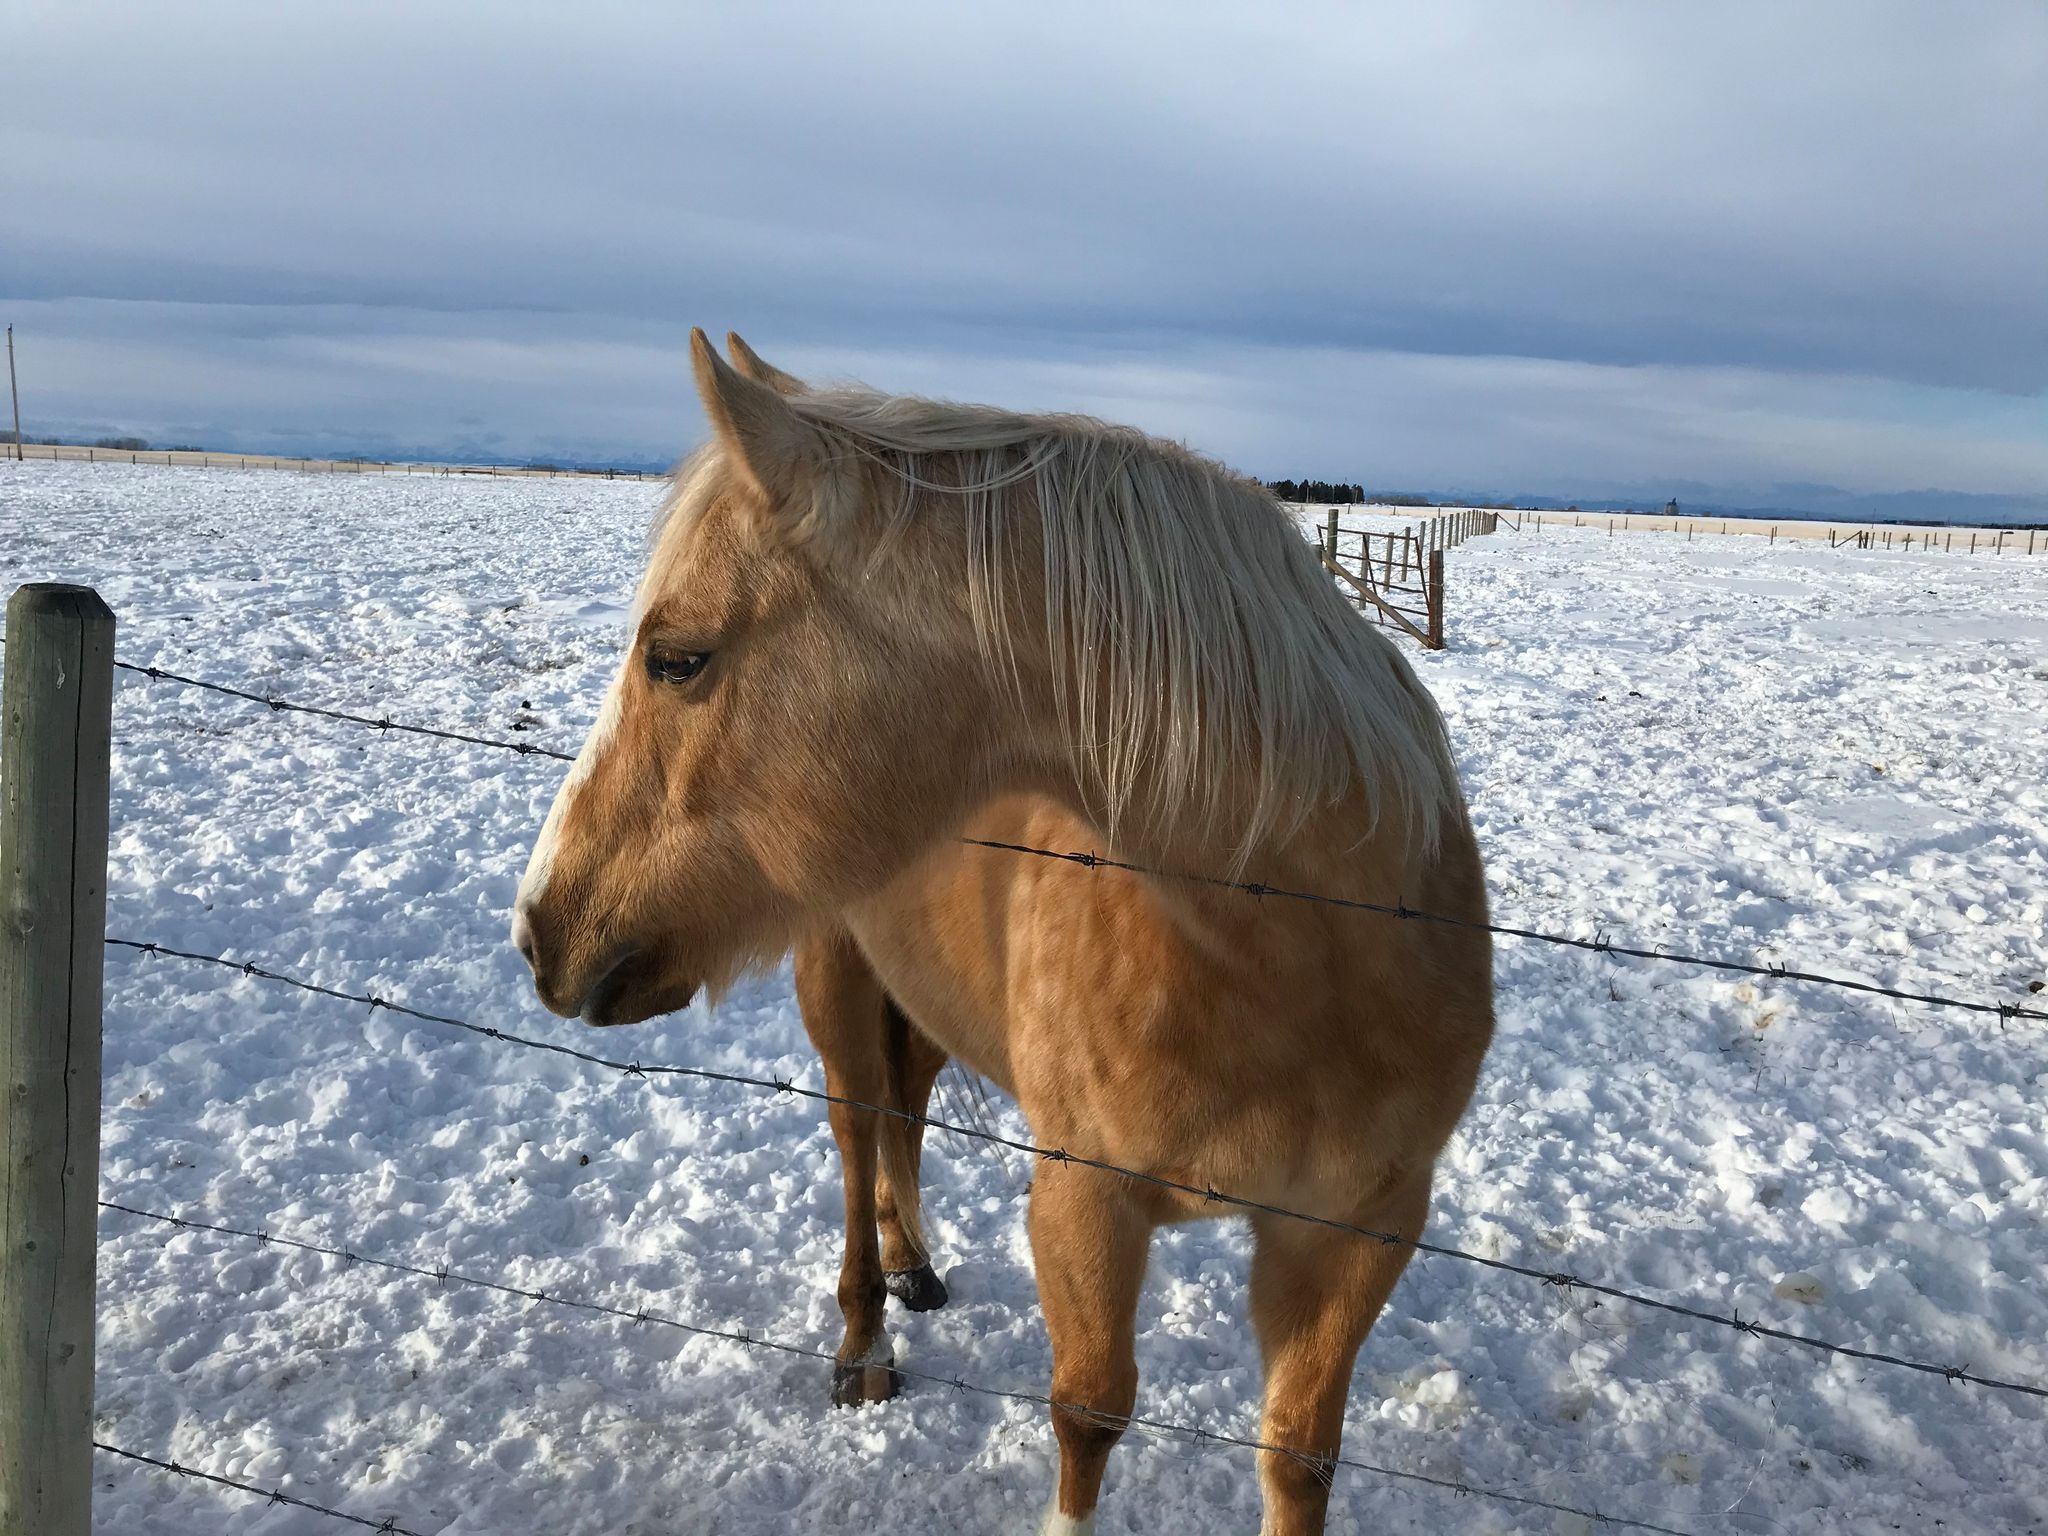 ANGEL - Jan 22/21. We lost Angel due to complications from colic.